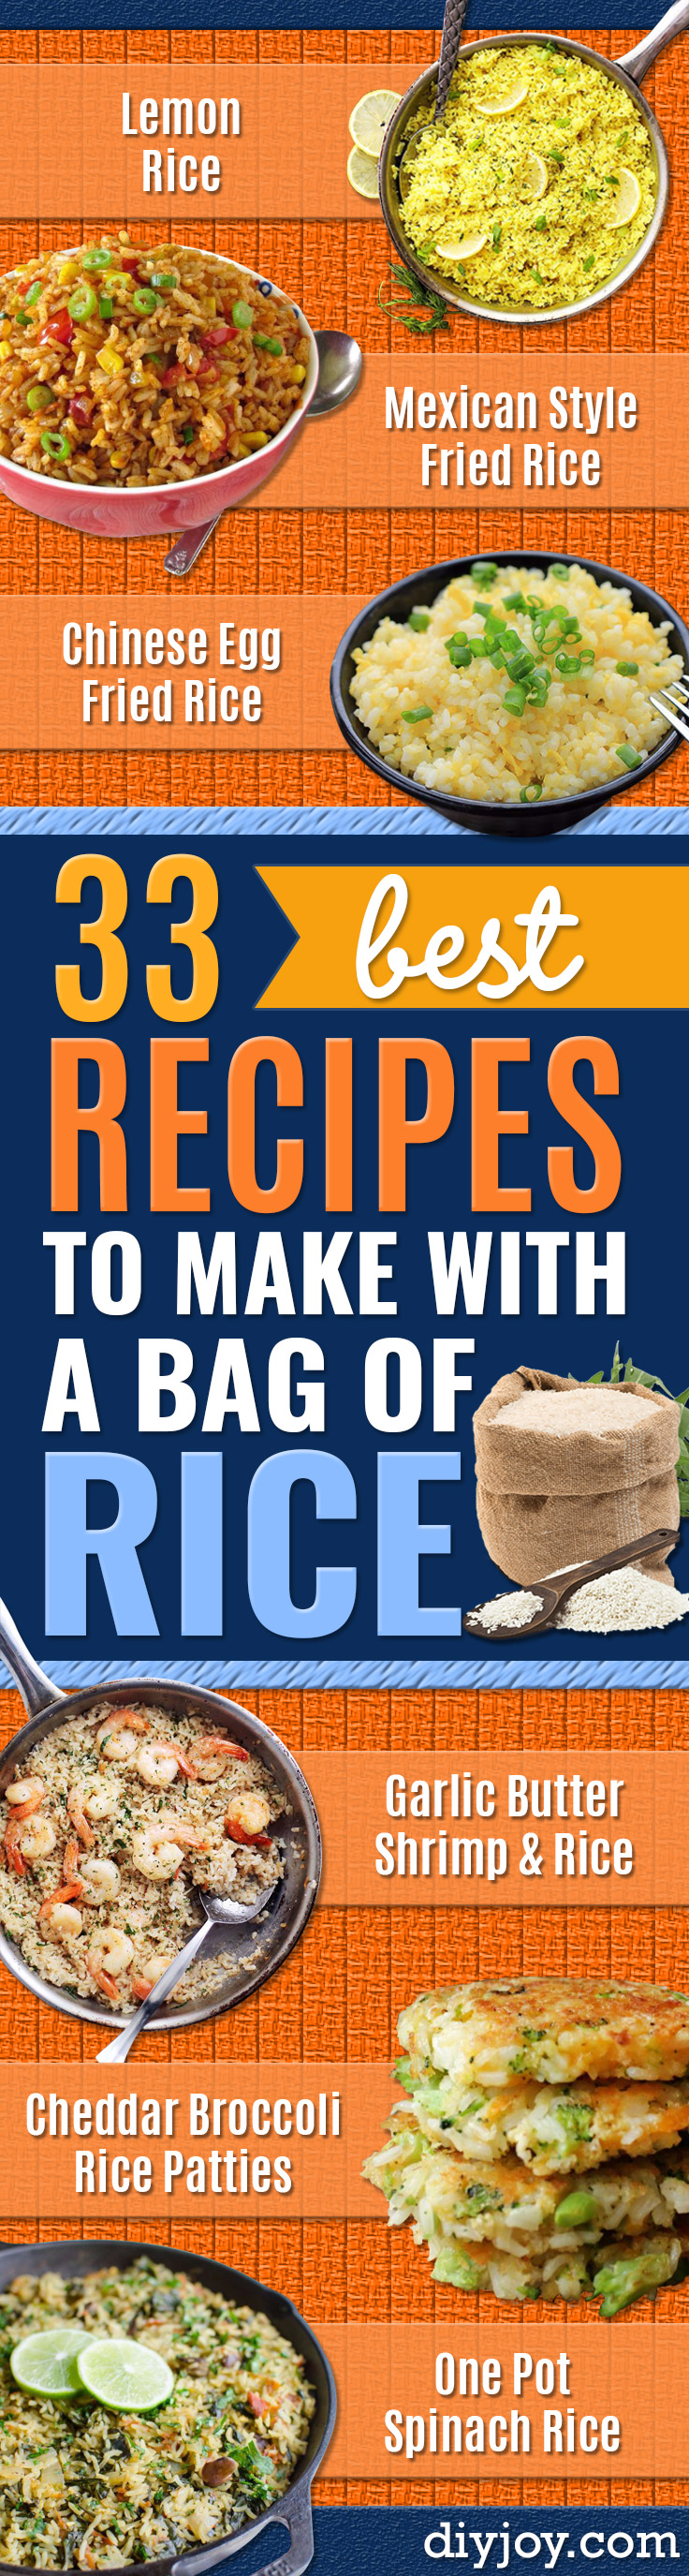 Rice Recipes - Easy Ideas for Quick Meals Made From a Bag of Rice - Healthy Recipes With Brown, White and Arborio Rice - Cheesy, Fried, Asian, Mexican Flavored Dinner Dishes and Side Dishes - DIY Projects and Crafts by DIY JOY